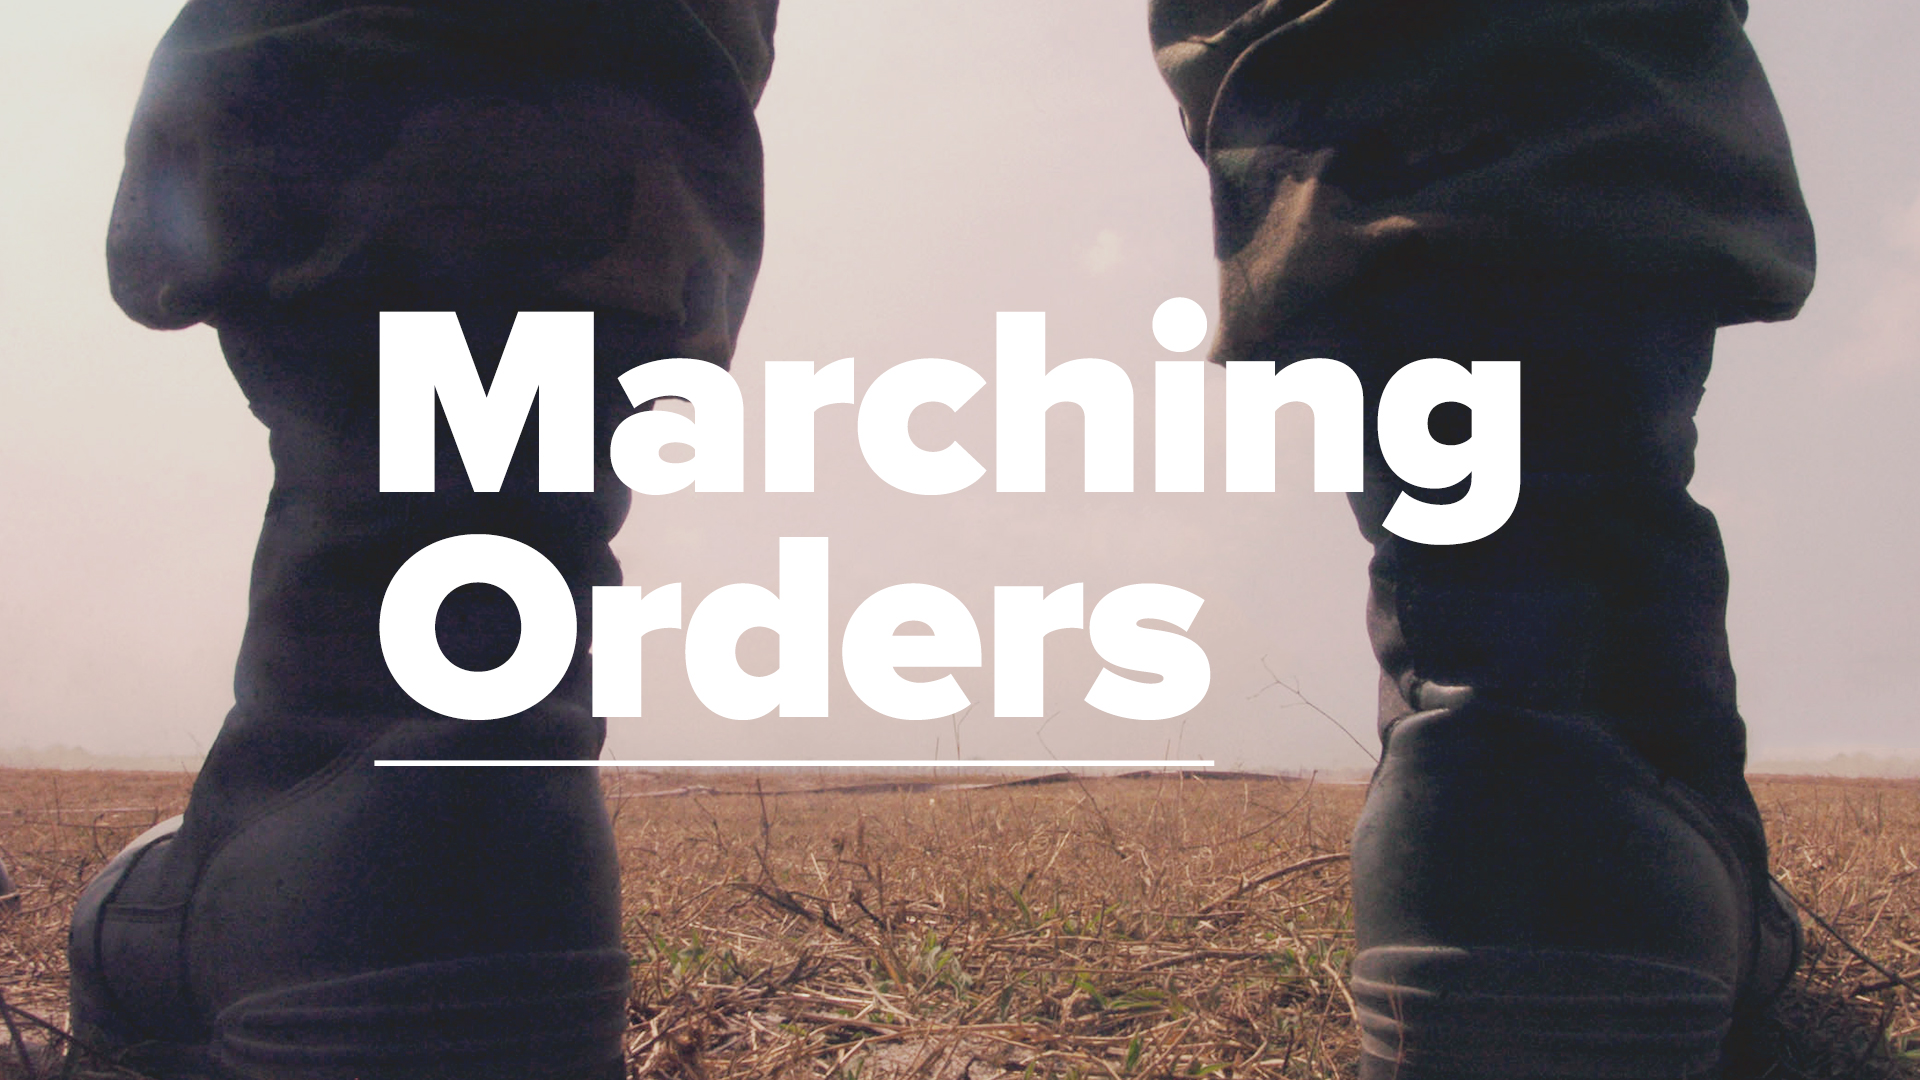 Marching-Orders-HD.jpg